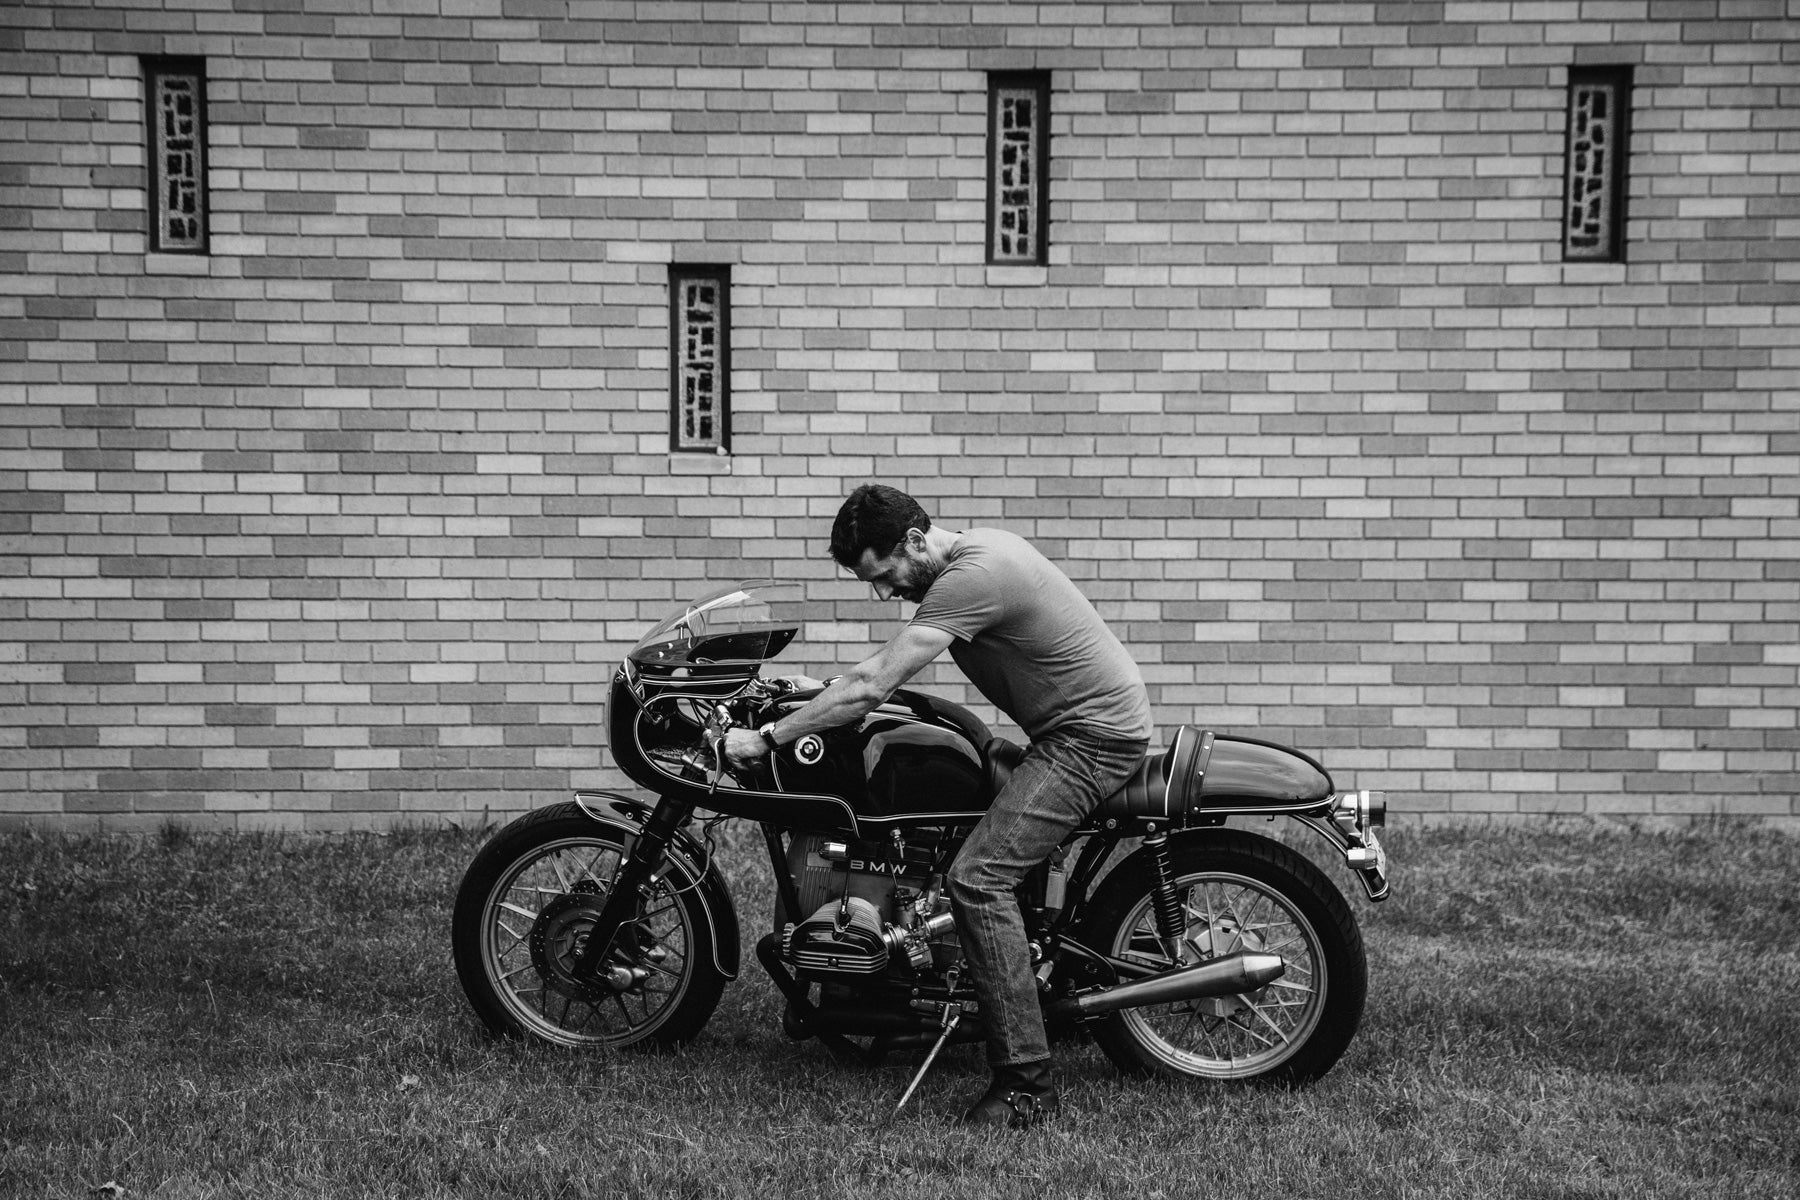 BMW R80 Cafe Racer Custom Classic Motorcycle Pittsburgh